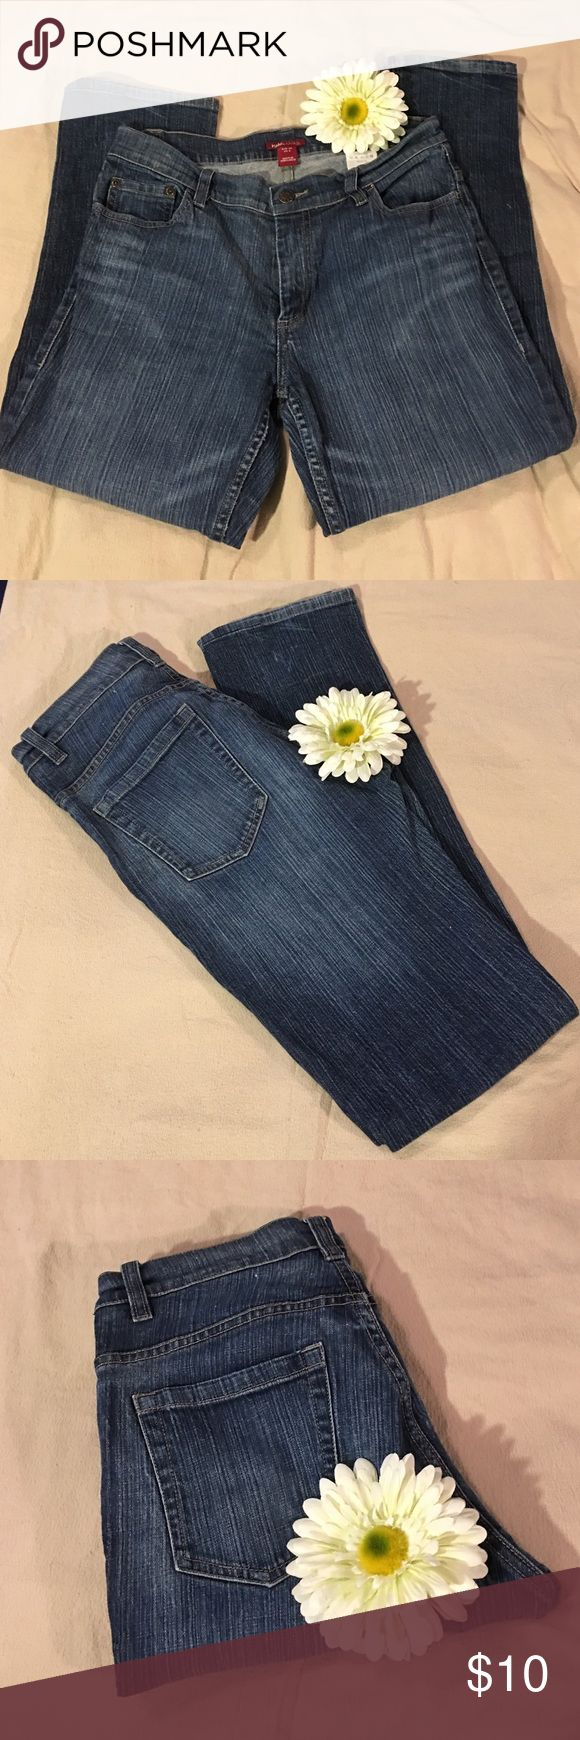 Straight Leg Stretch Jeans Size 8 Straight Leg Stretch Jeans Regular Length Size 8 H&M Jeans Straight Leg